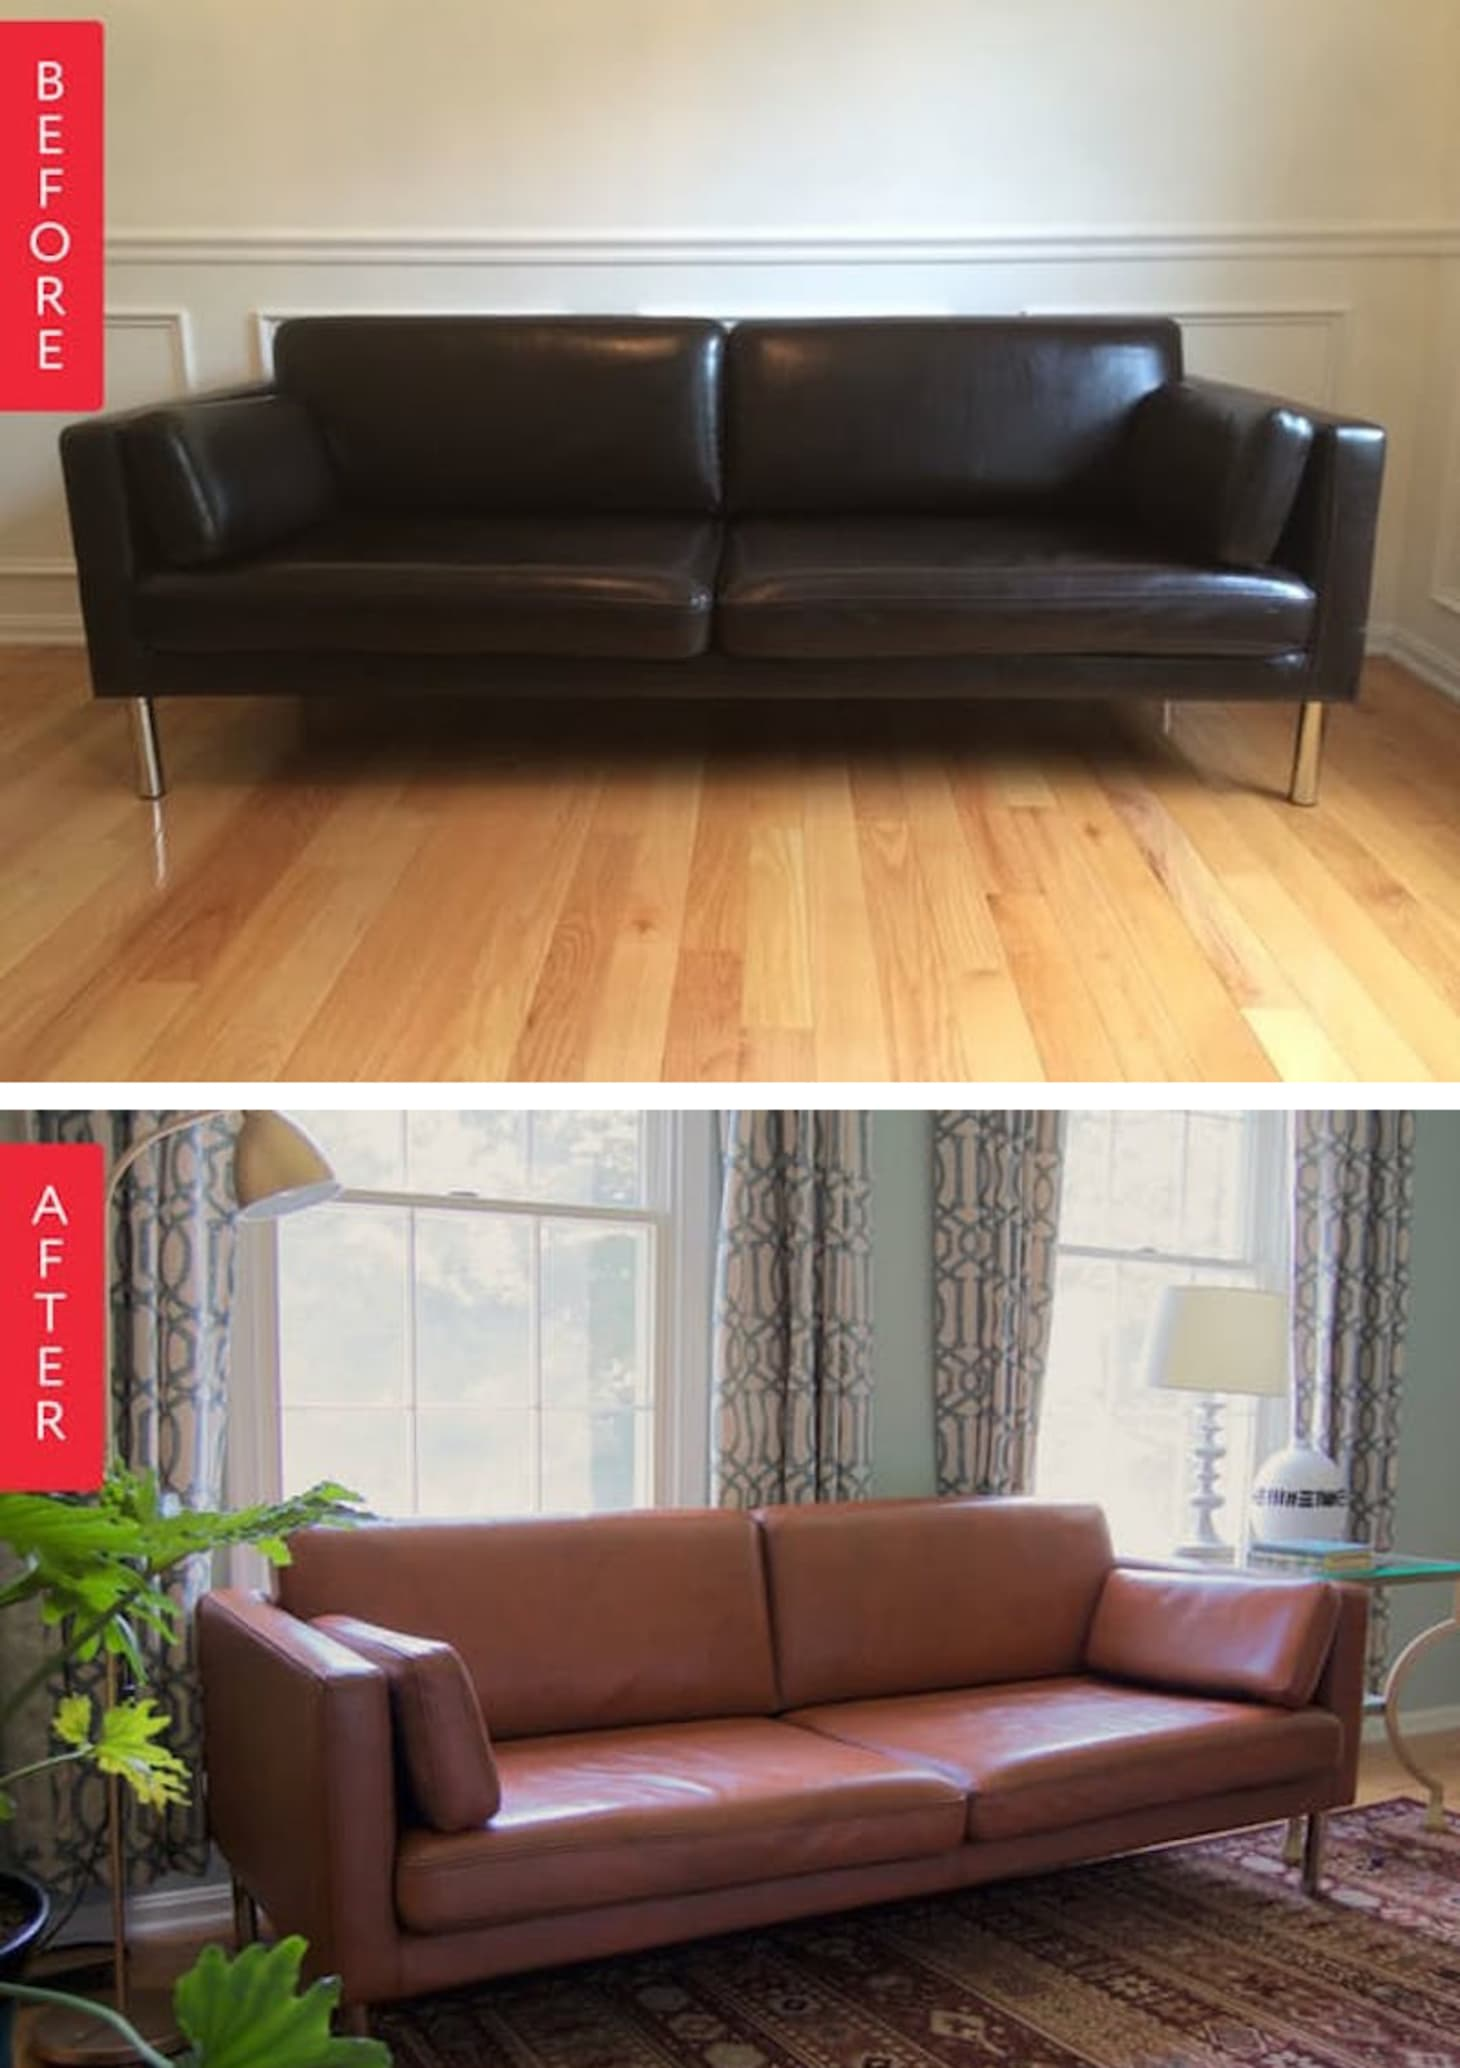 How to Make Your Old Ugly Sofa Look New Again | Apartment ...